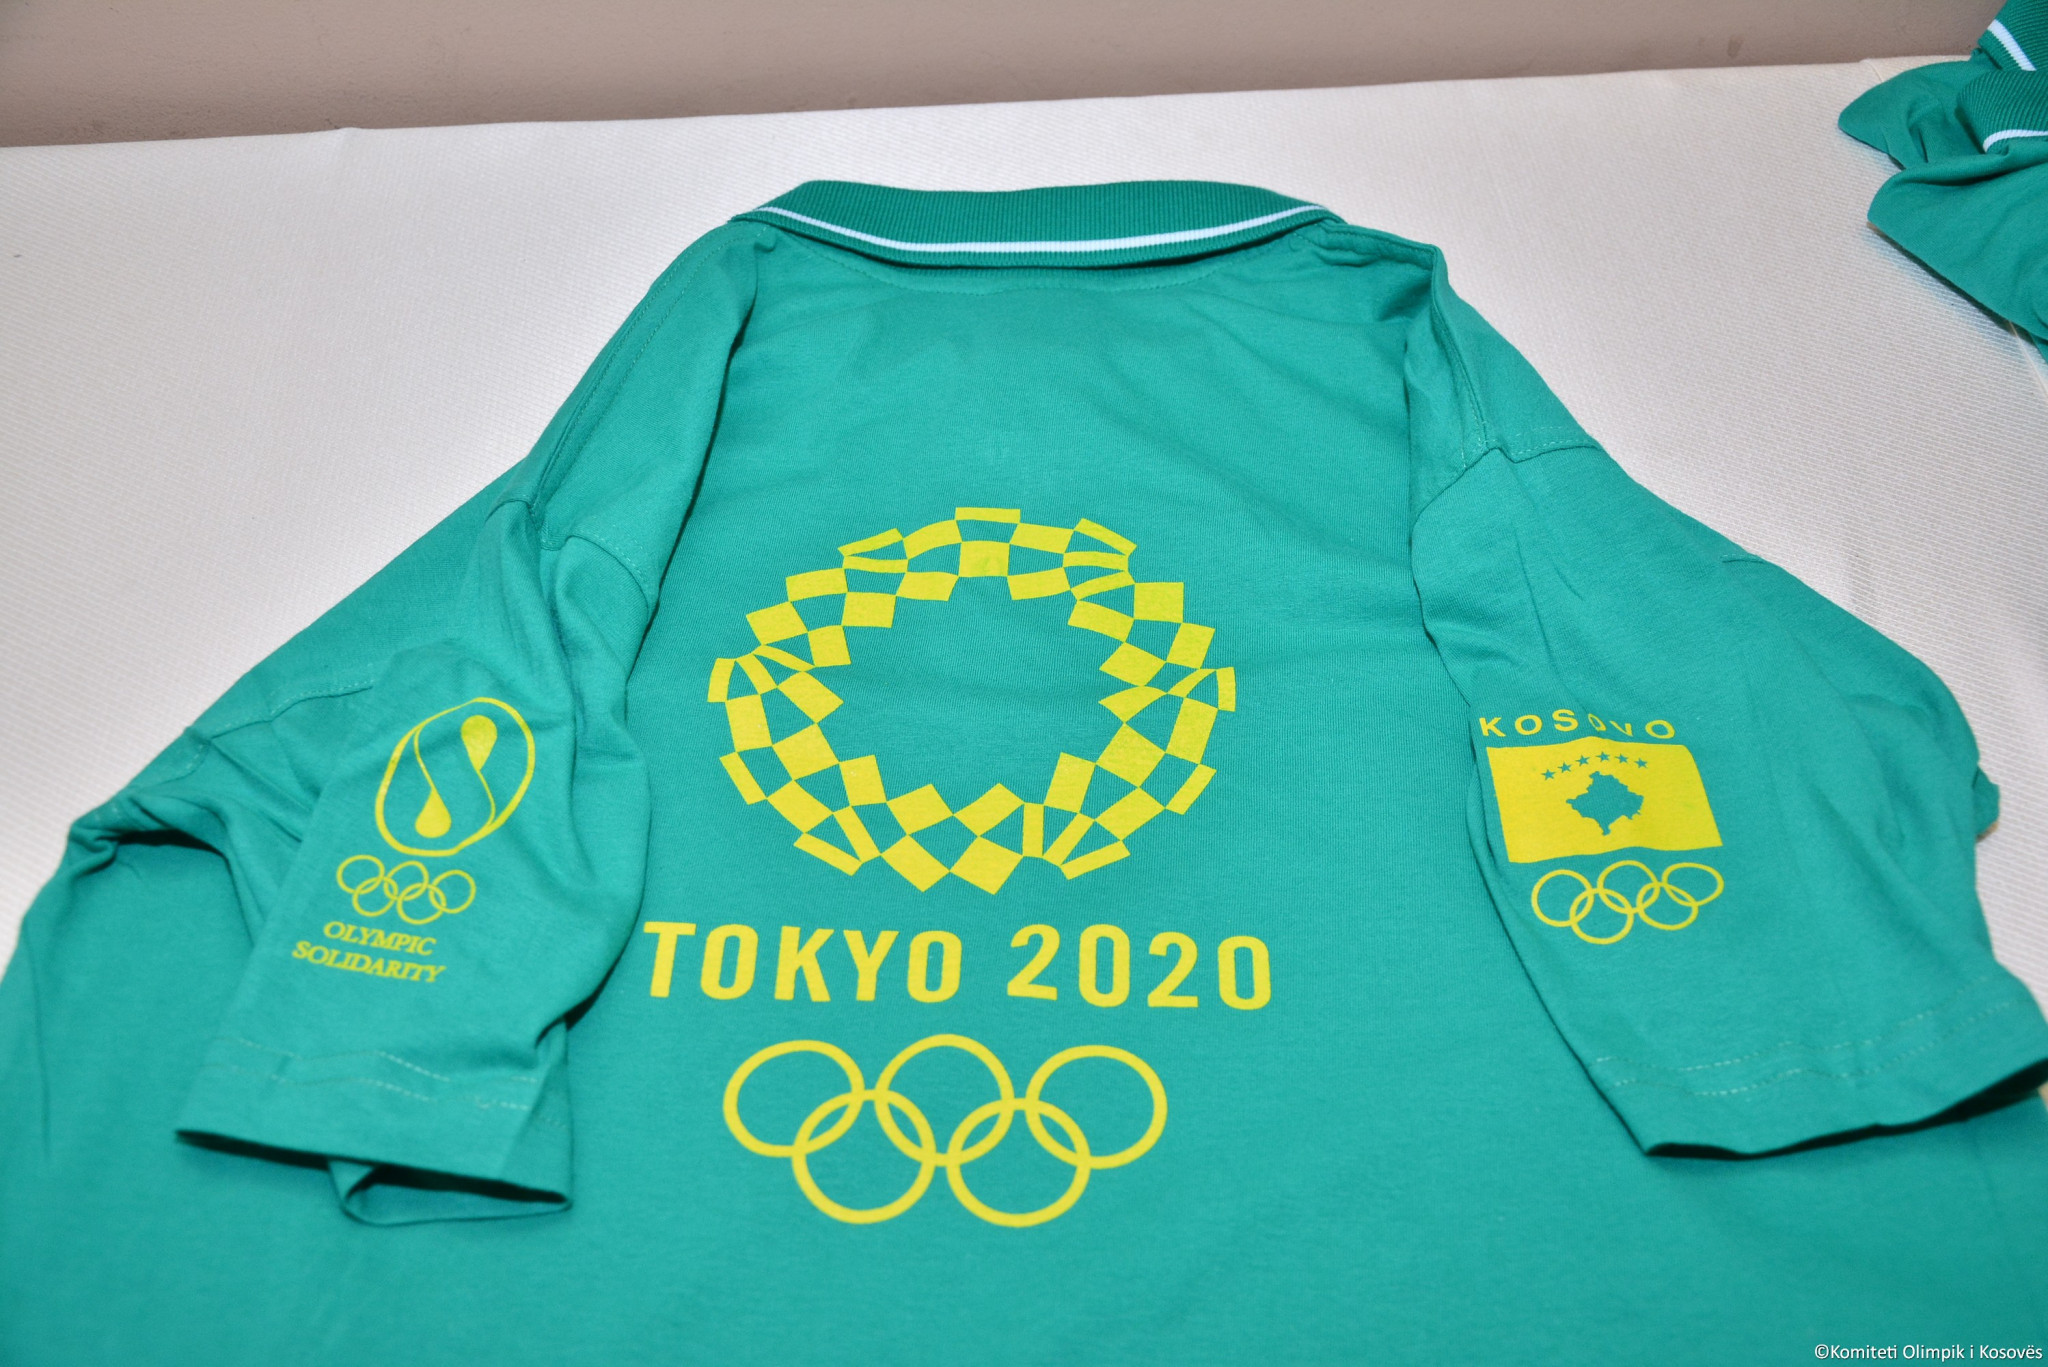 The jersey which will be worn by athletes from Kosovo at the Tokyo 2020 Olympics ©Kosovo Olympic Committee